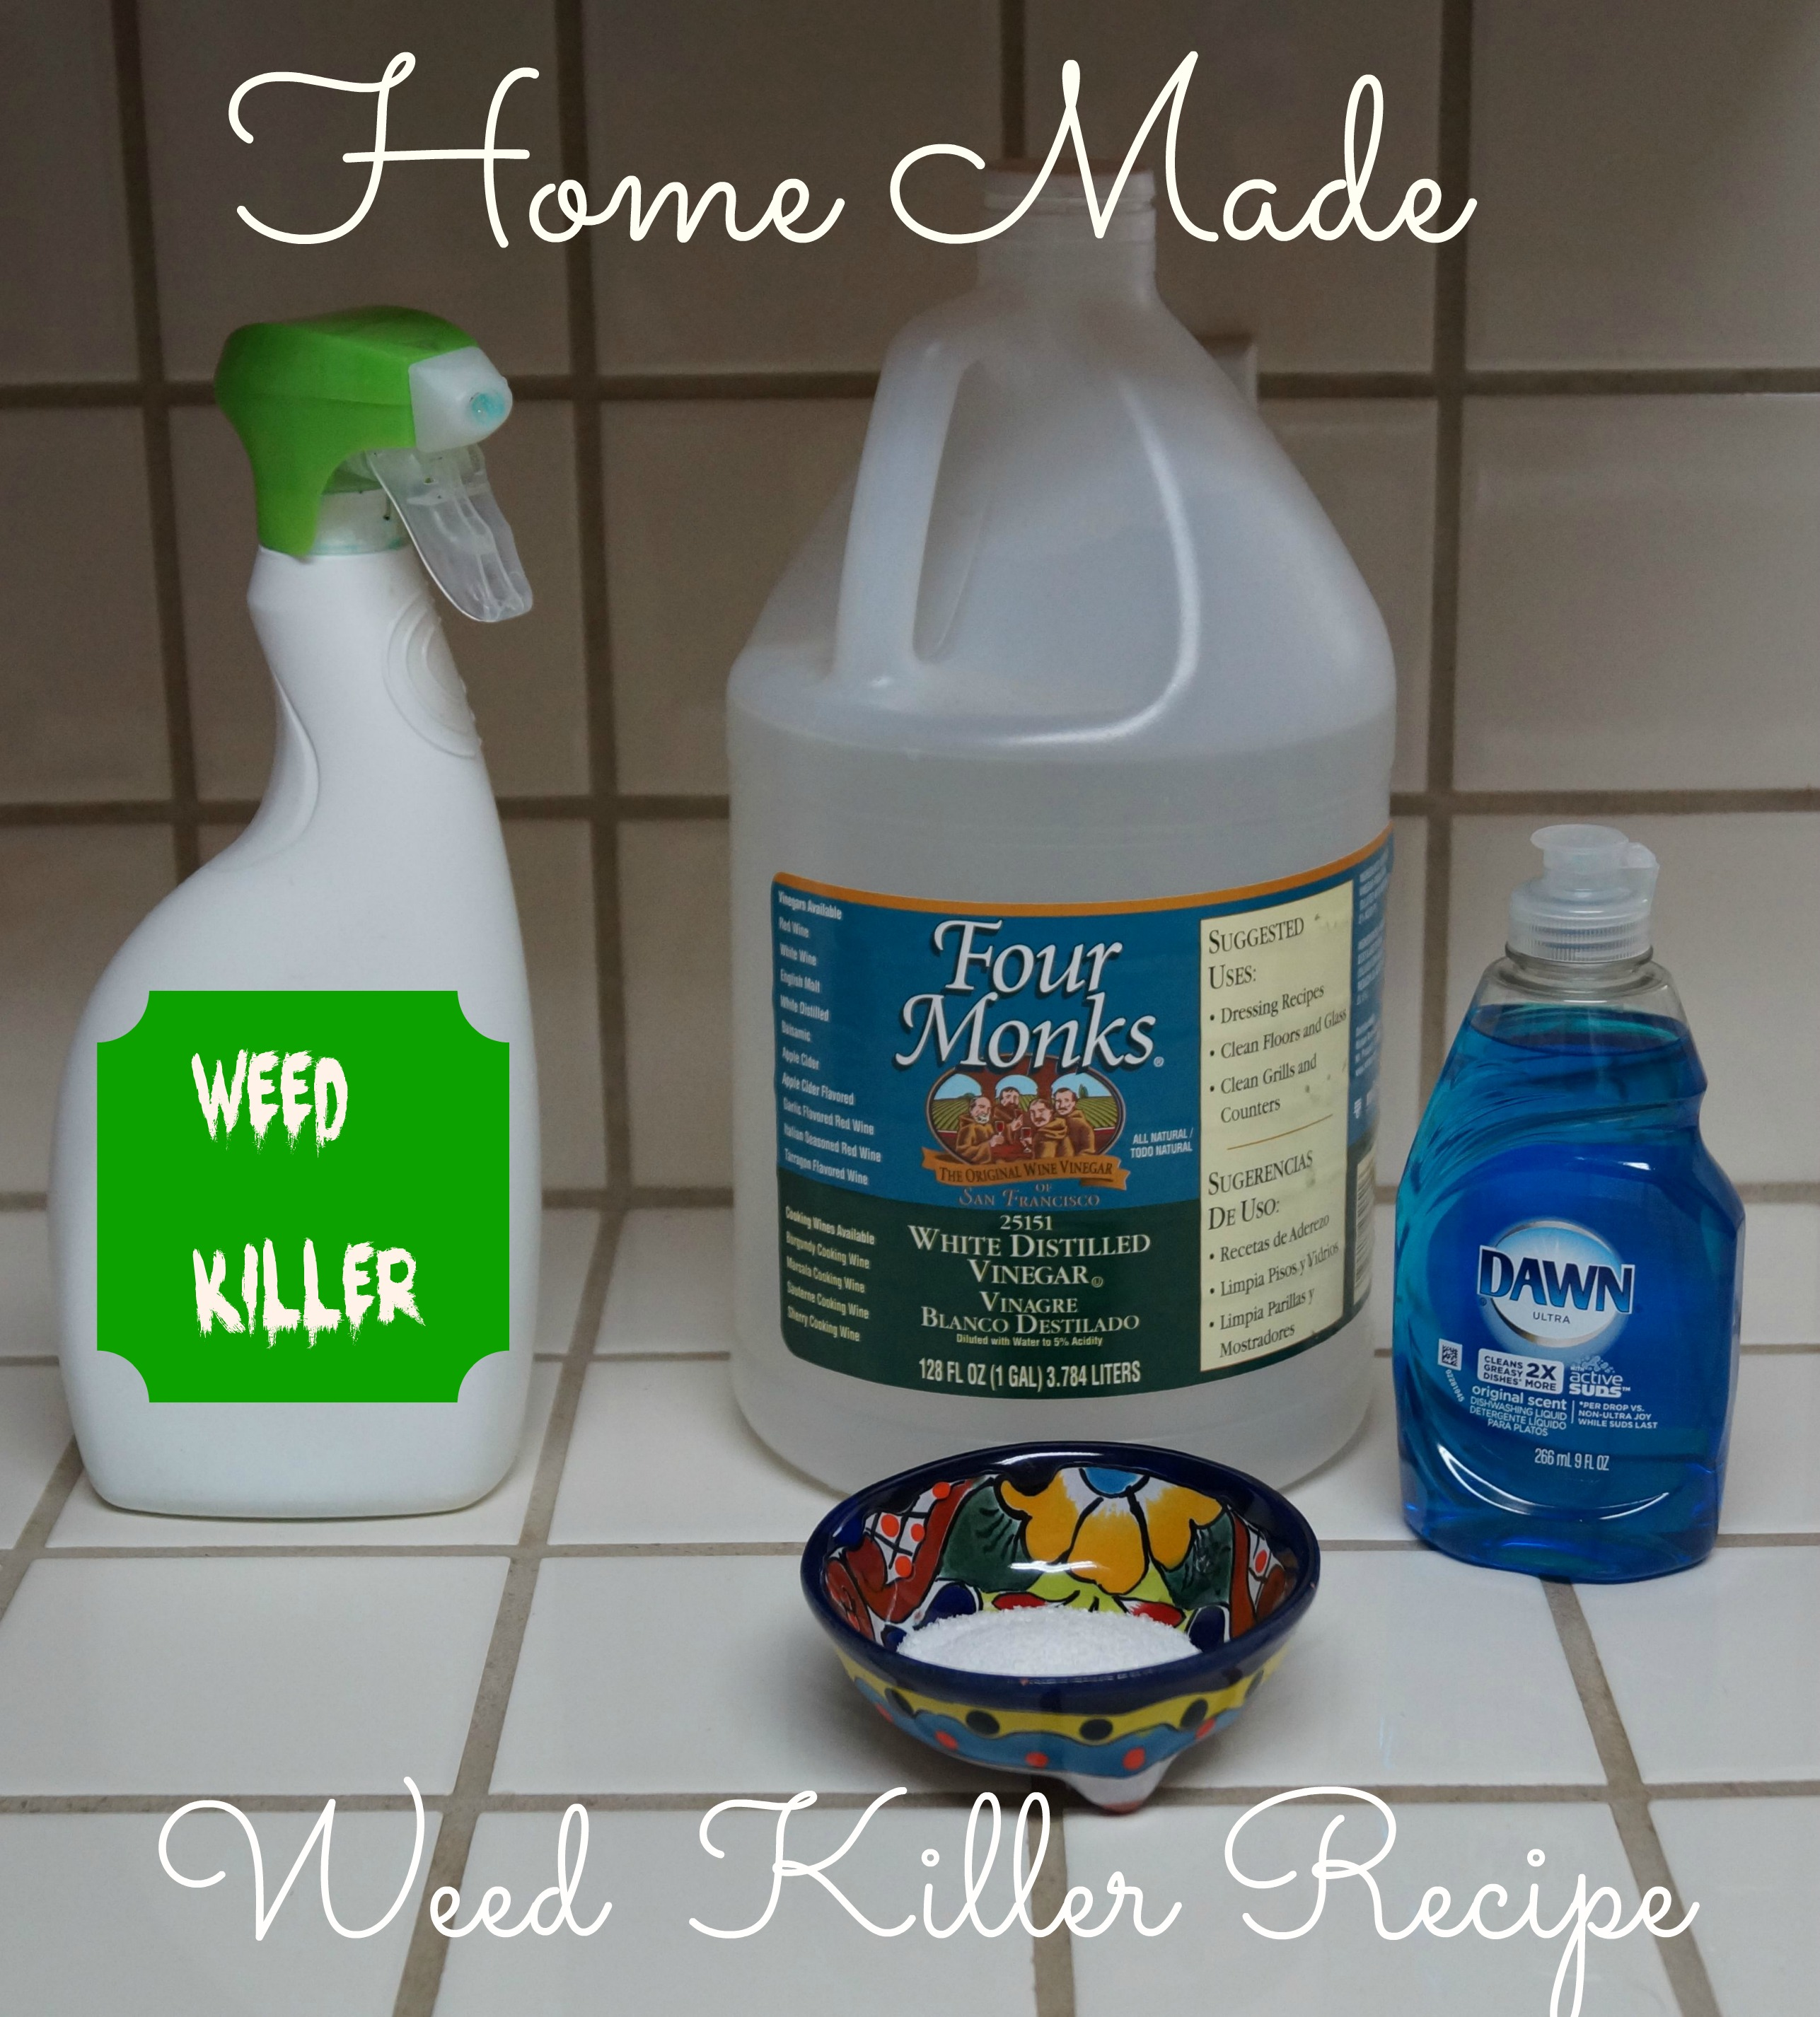 Home Made Weed Killer Recipe